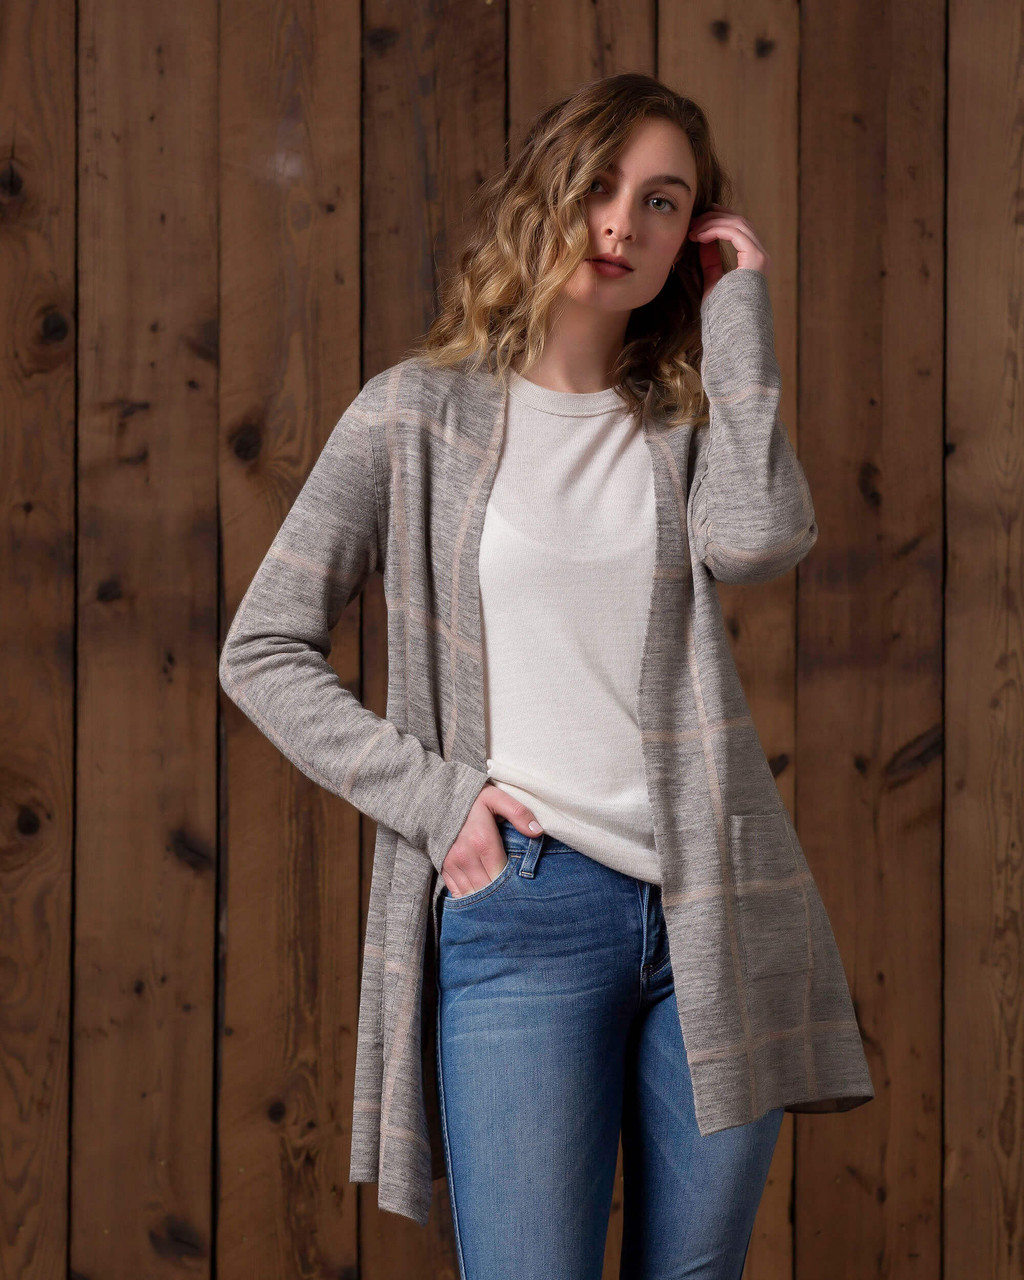 alicia adams alpaca womens reversible windowpane cardigan, alpaca career wear, alpaca luxury cardigan, alpaca luxury sweater,  womens alpaca pullover, womens reversible alpaca sweater, womens reversible alpaca cardigan, neutral alpaca cardigan, lightweight alpaca cardigan, 100 alpaca career wear, 100% alpaca luxury cardigan, 100 alpaca luxury sweater,  womens 100% alpaca pullover, womens reversible 100% alpaca sweater, womens reversible 100 alpaca cardigan, neutral alpaca cardigan, lightweight alpaca blend cardigan